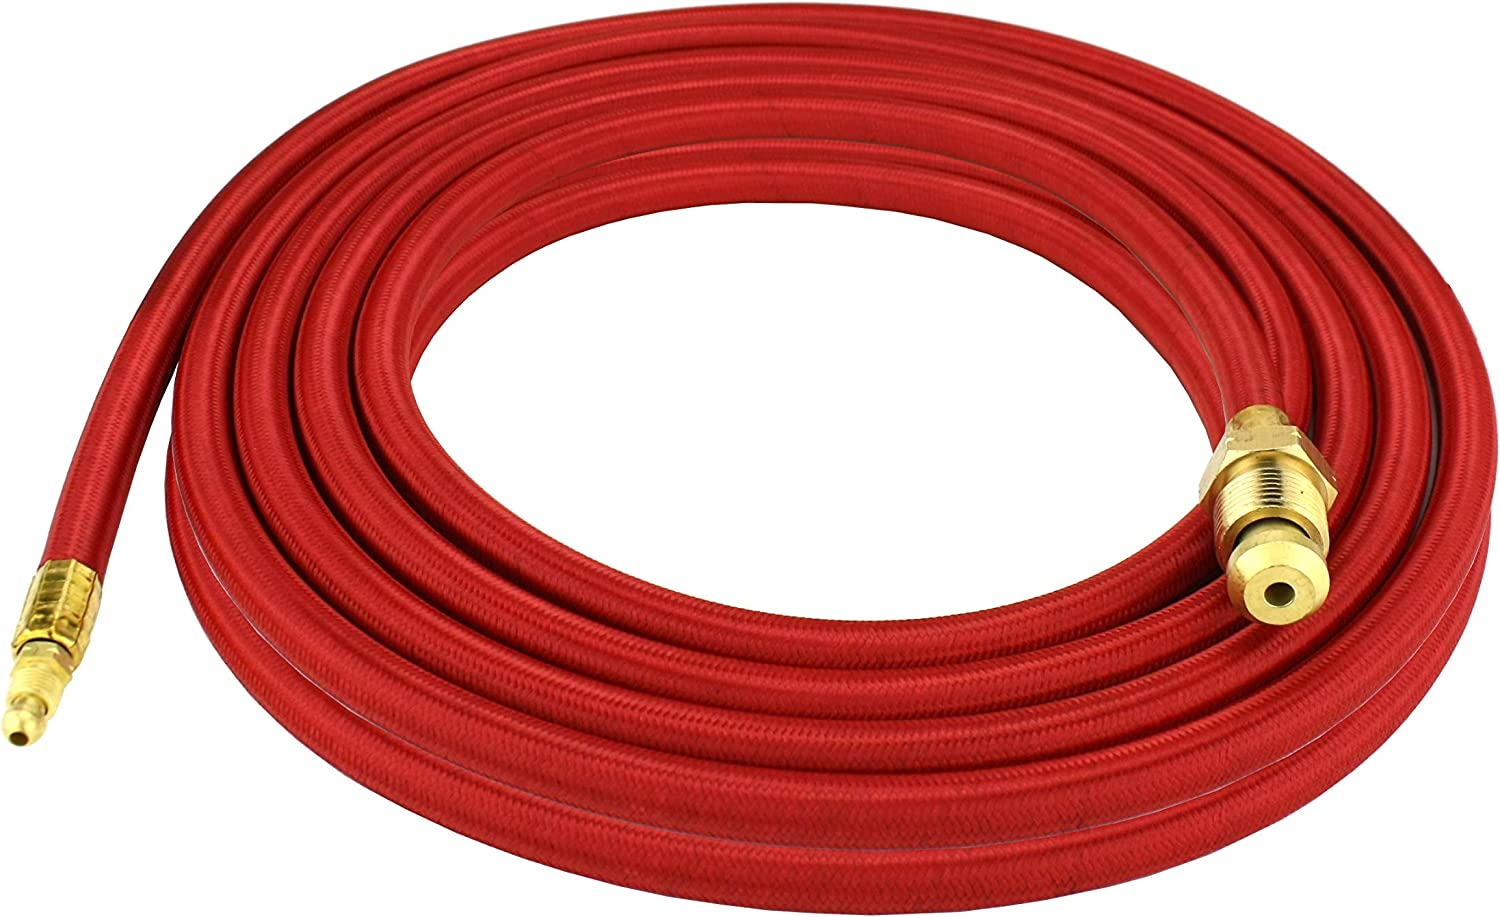 TIG Torch Power Cable Ultra-flexible Wire Gold+Red Metalworking Practical